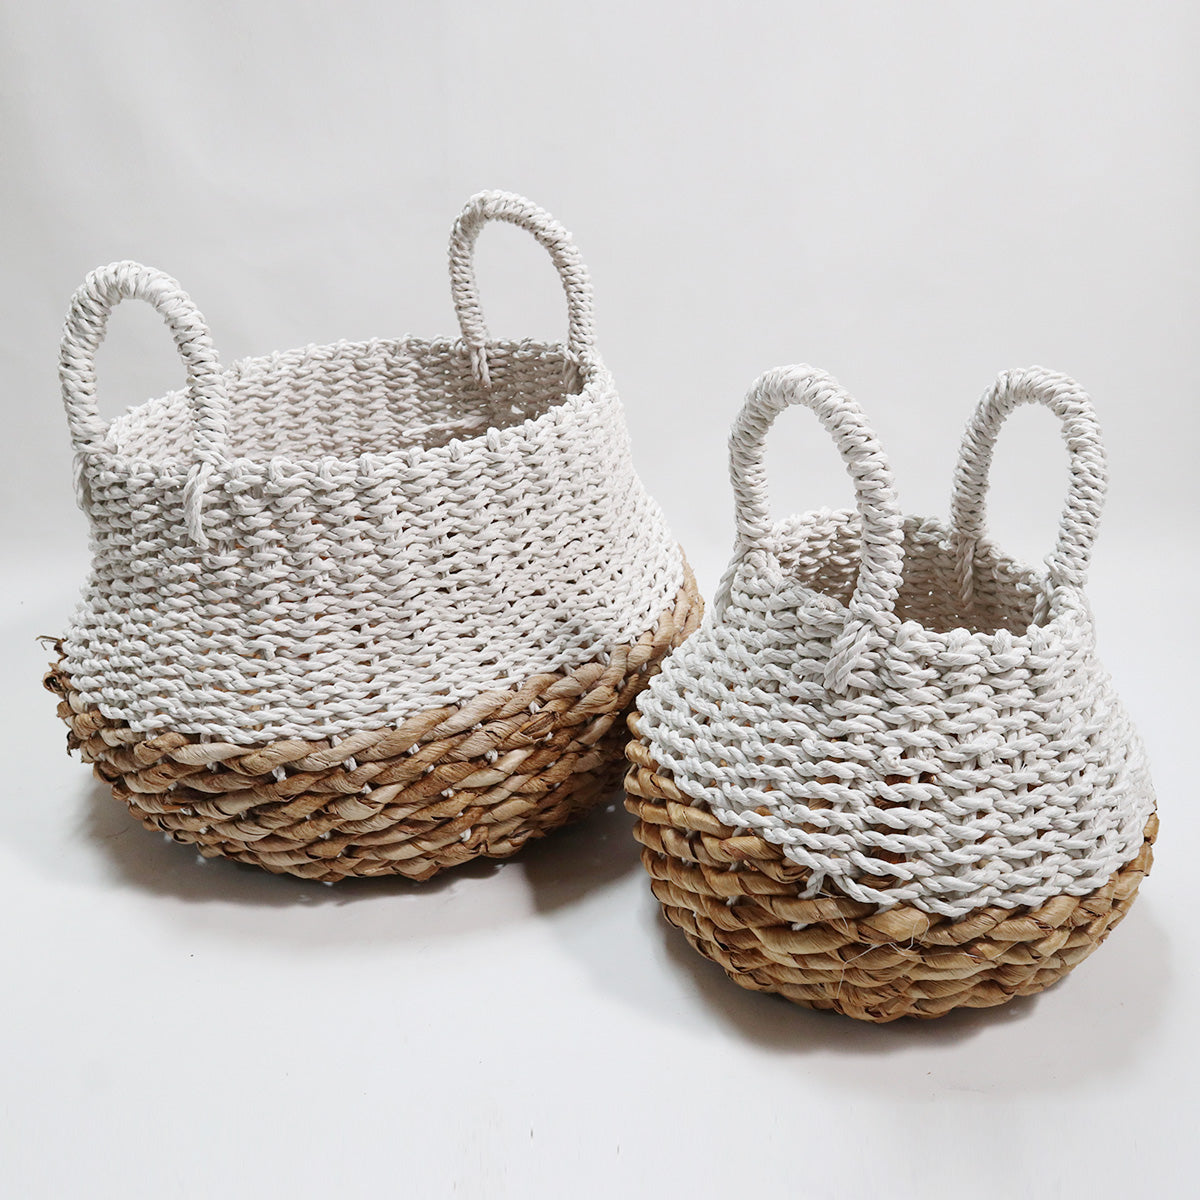 HBSC076 SET OF 2 MENDONG AND SEA GRASS NATURAL AND WHITE BASKETS